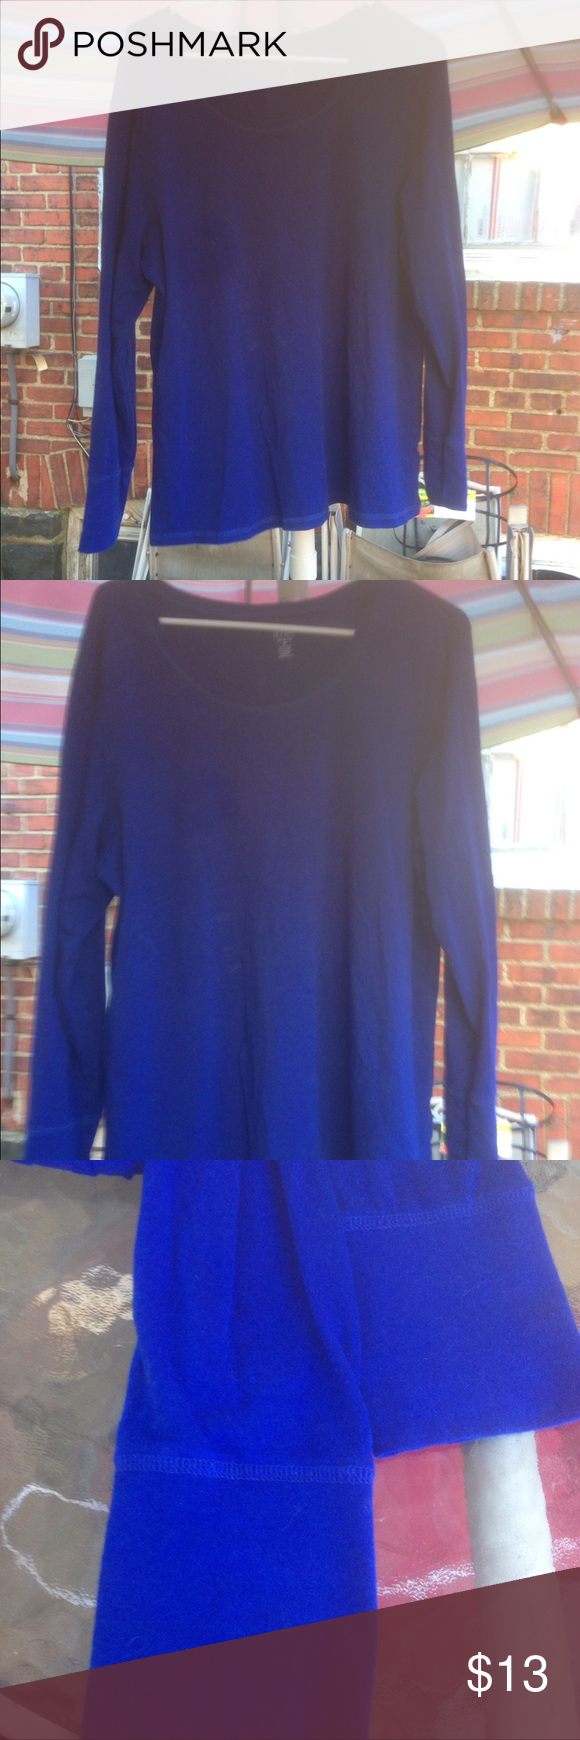 Blue long sleeved tunic by a.n.a NICE! Gently used long sleeved blue shirt by A.n.a.  Size is 2x. Nice and comfy cozy. Pair with some jeans and you're good to go. a.n.a Tops Tees - Long Sleeve